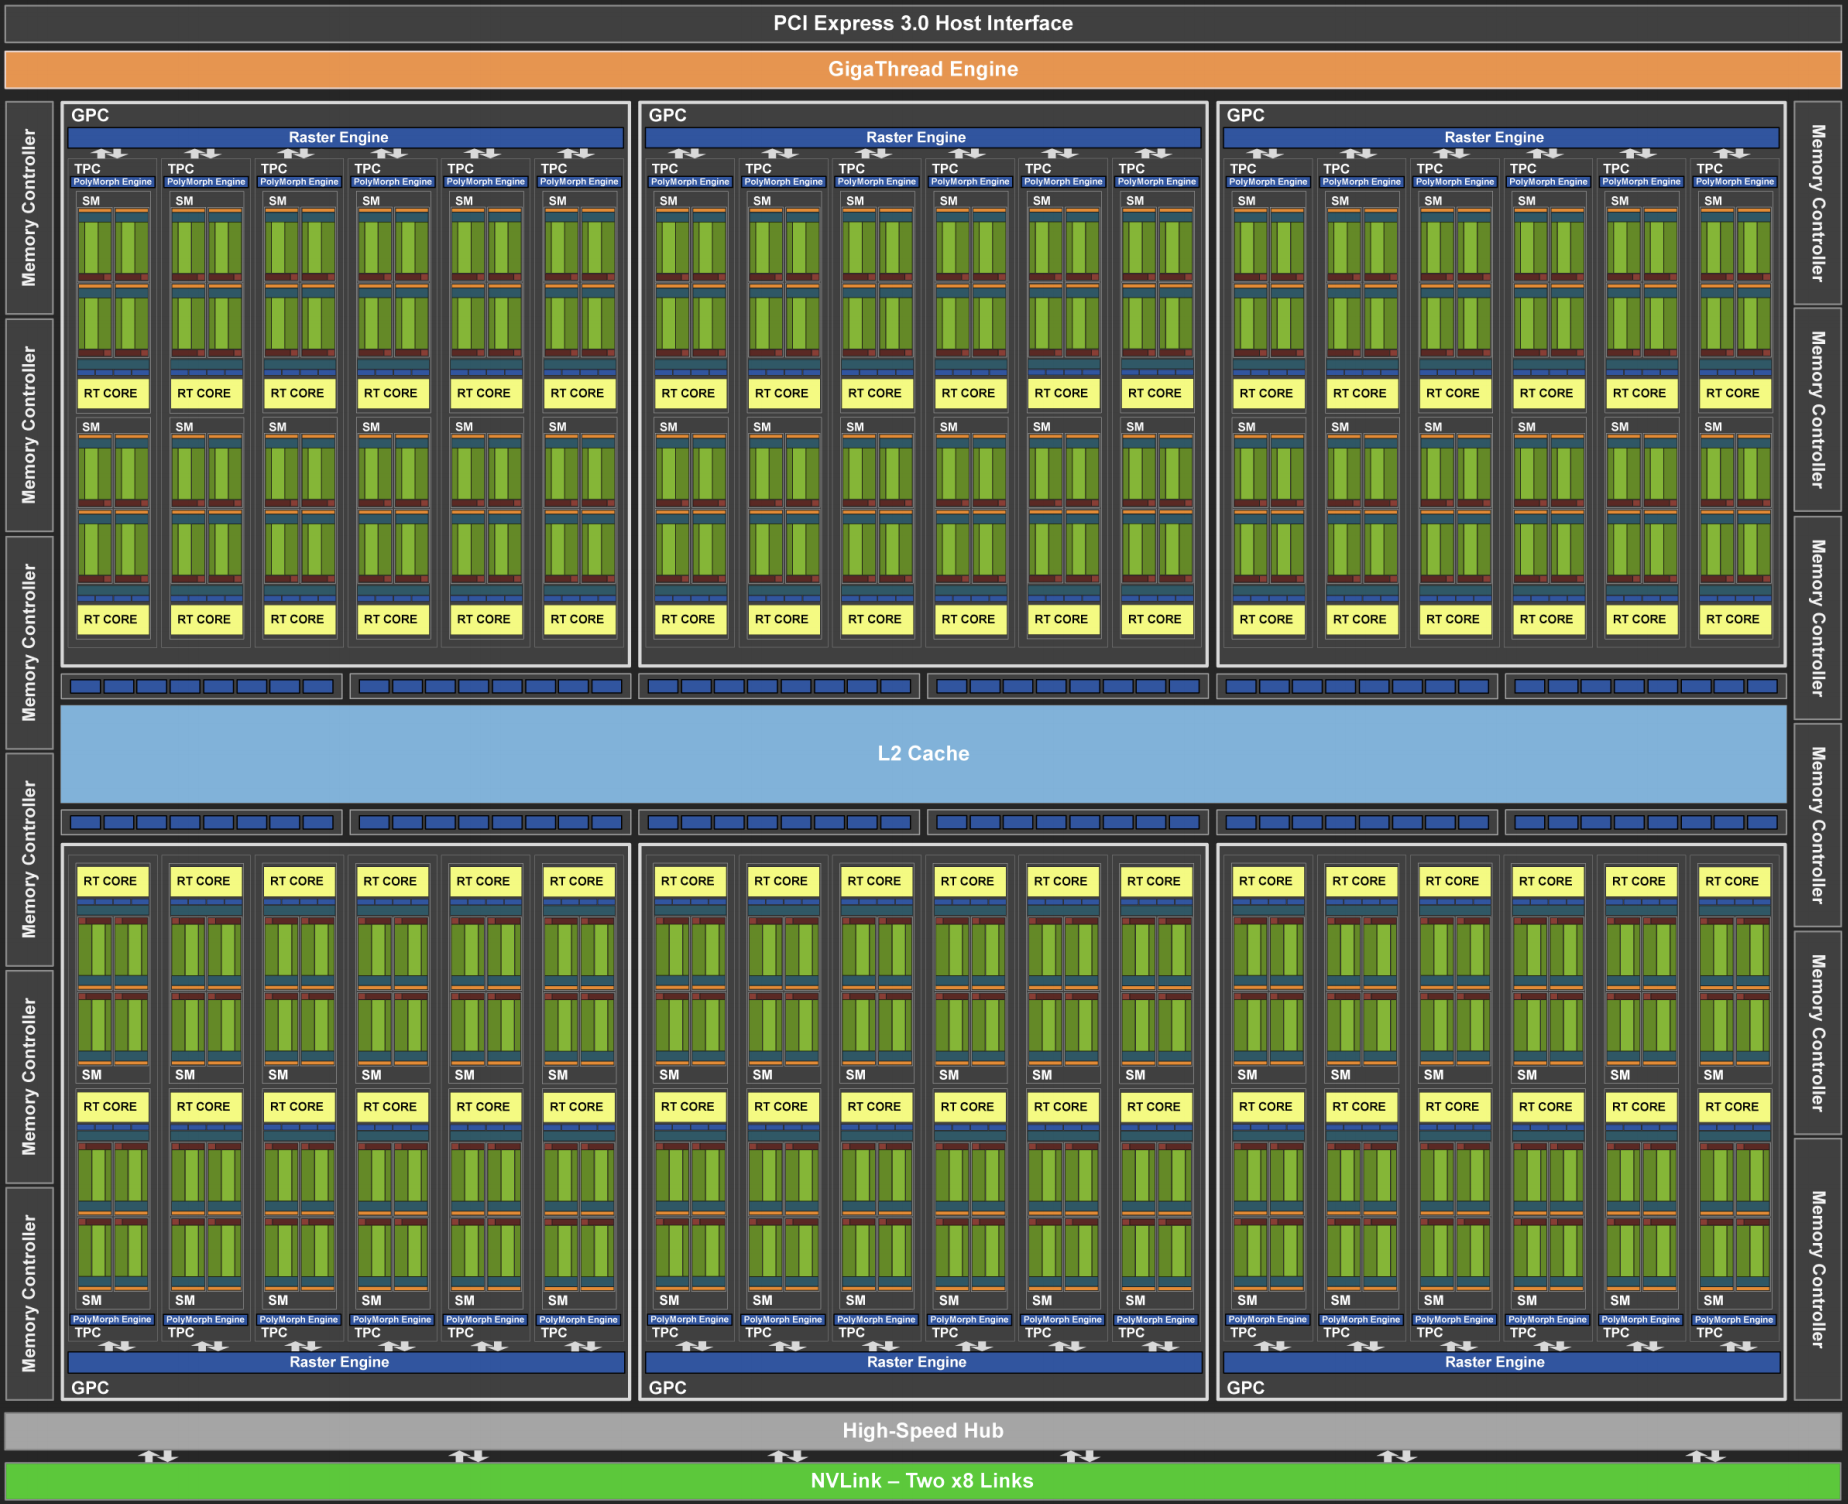 NVIDIA Turing Architecture (image courtesy of NVIDIA)